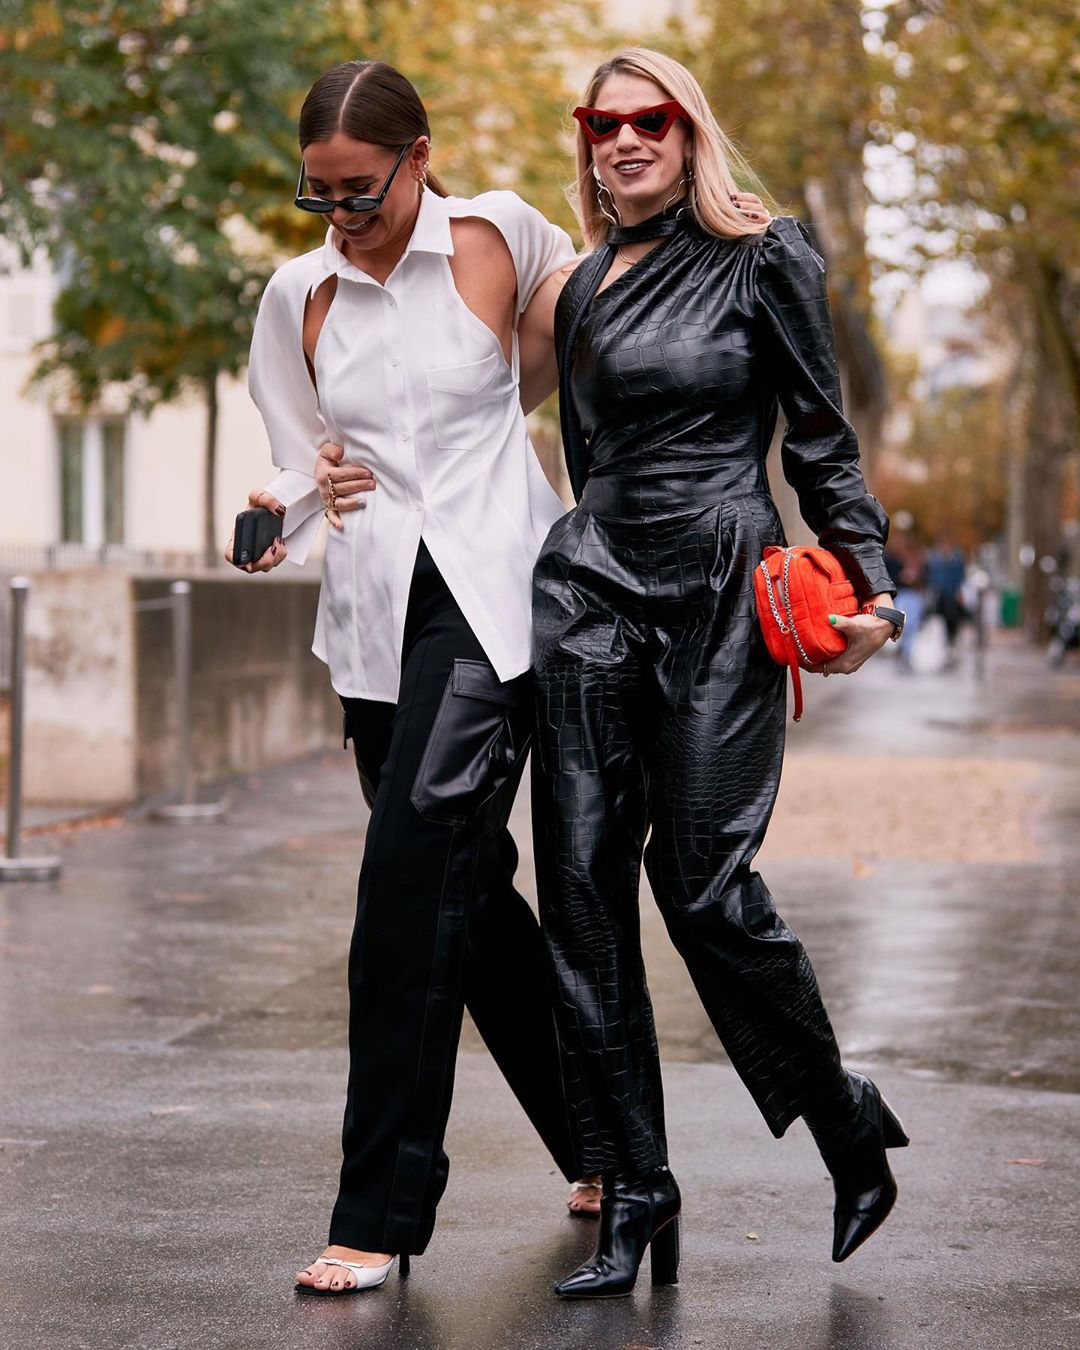 Cut-Out Tops are Fall's Answer to Sexy Street Style